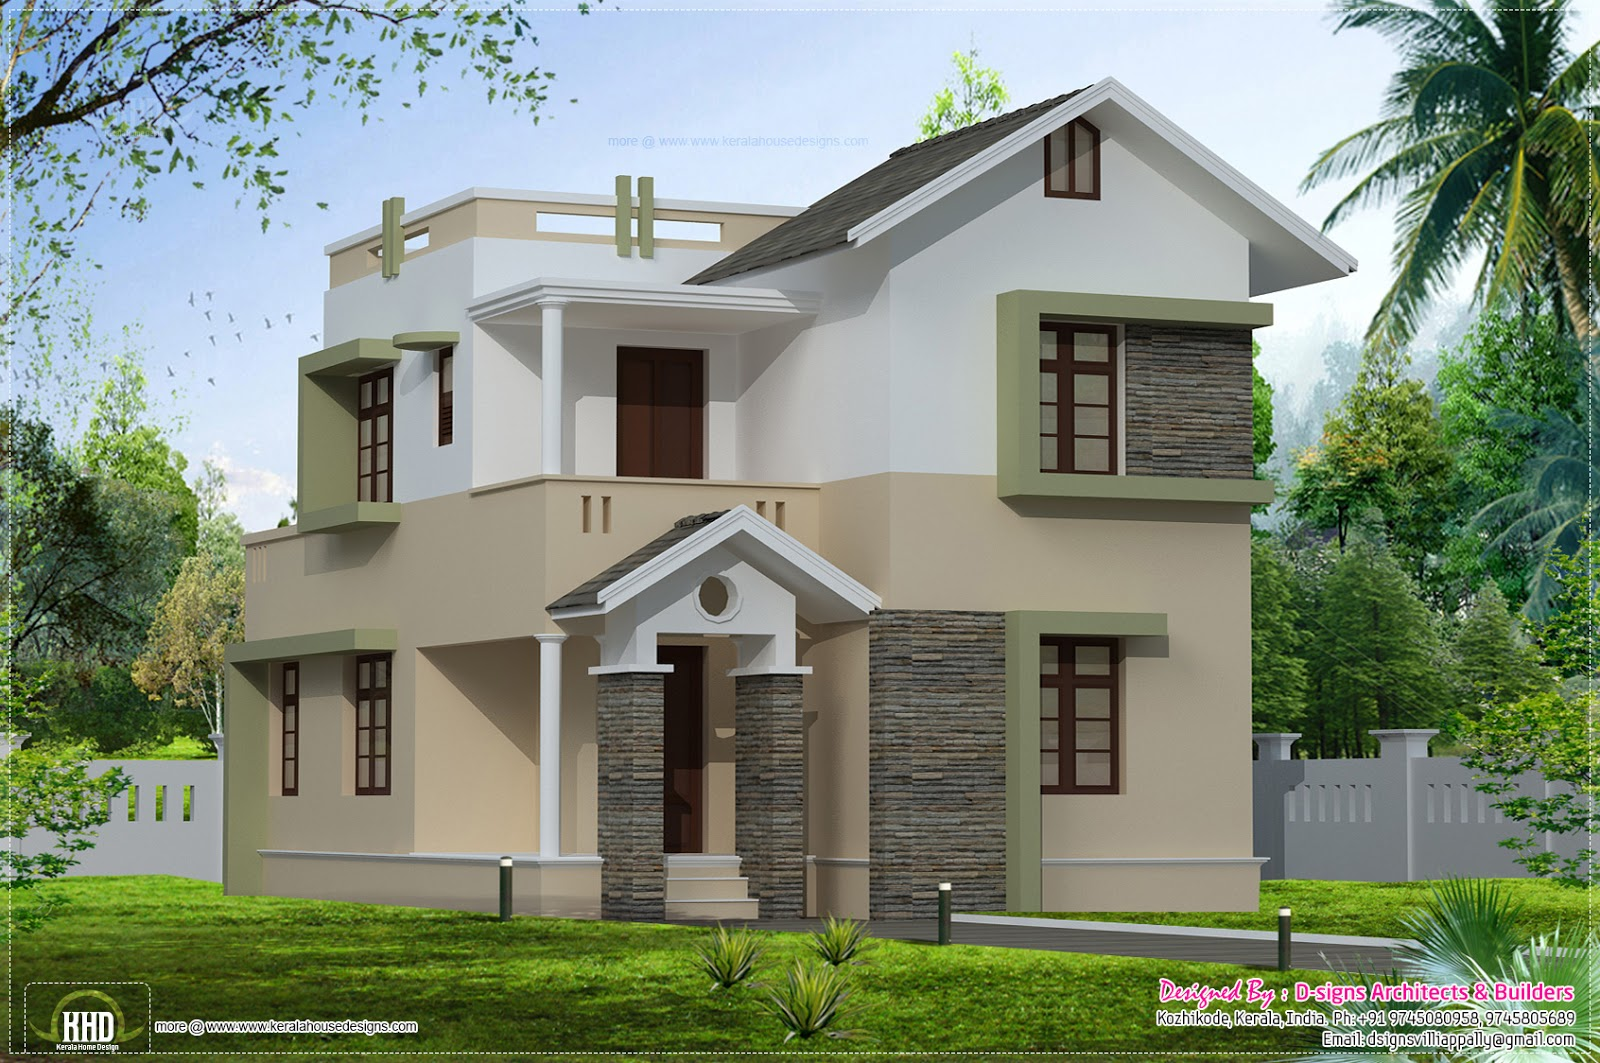 Best interior design house for Small house plans in kerala